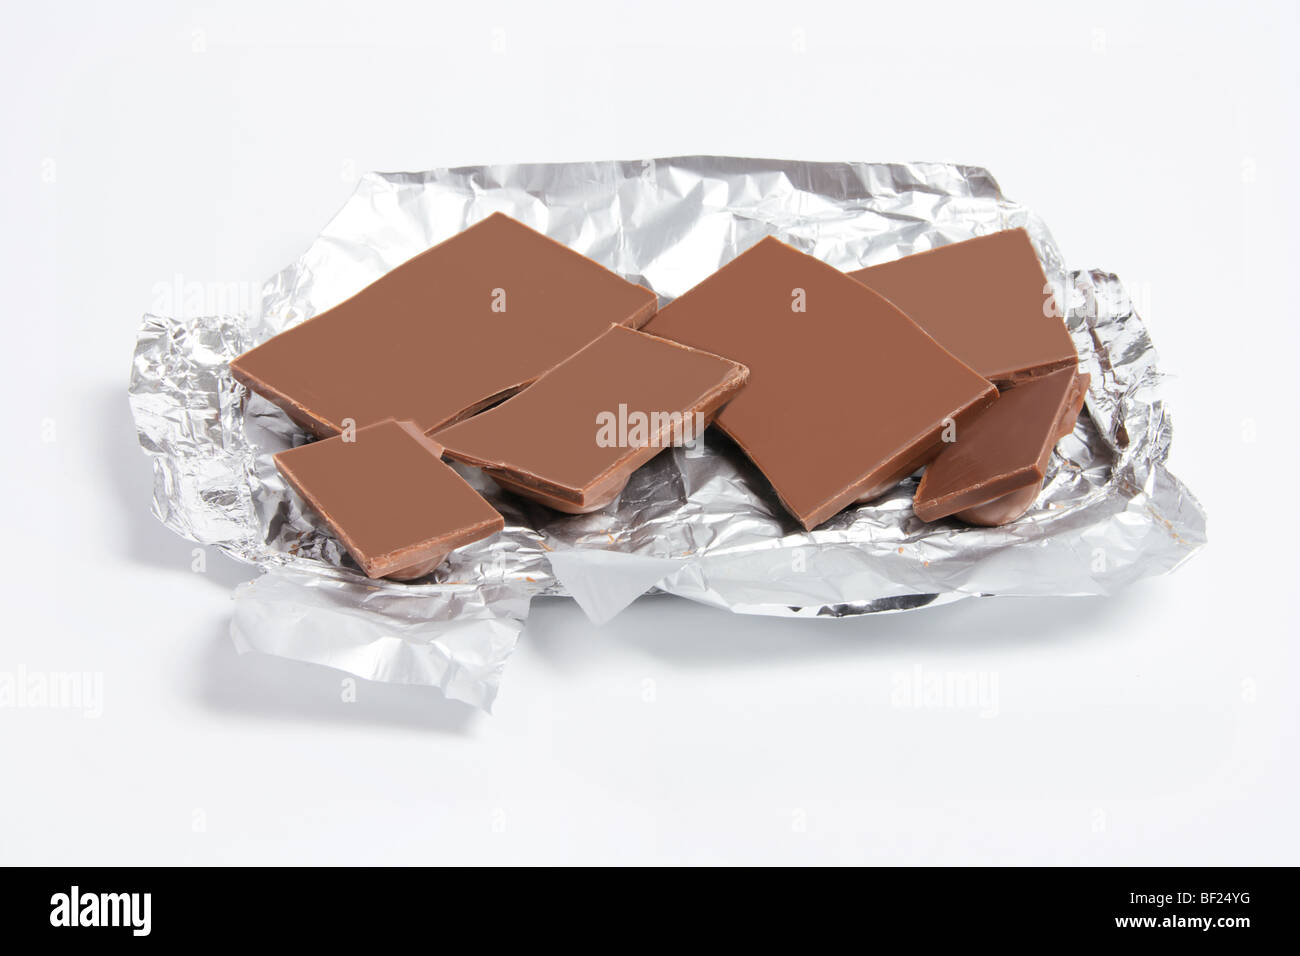 Pieces of Chocolate - Stock Image